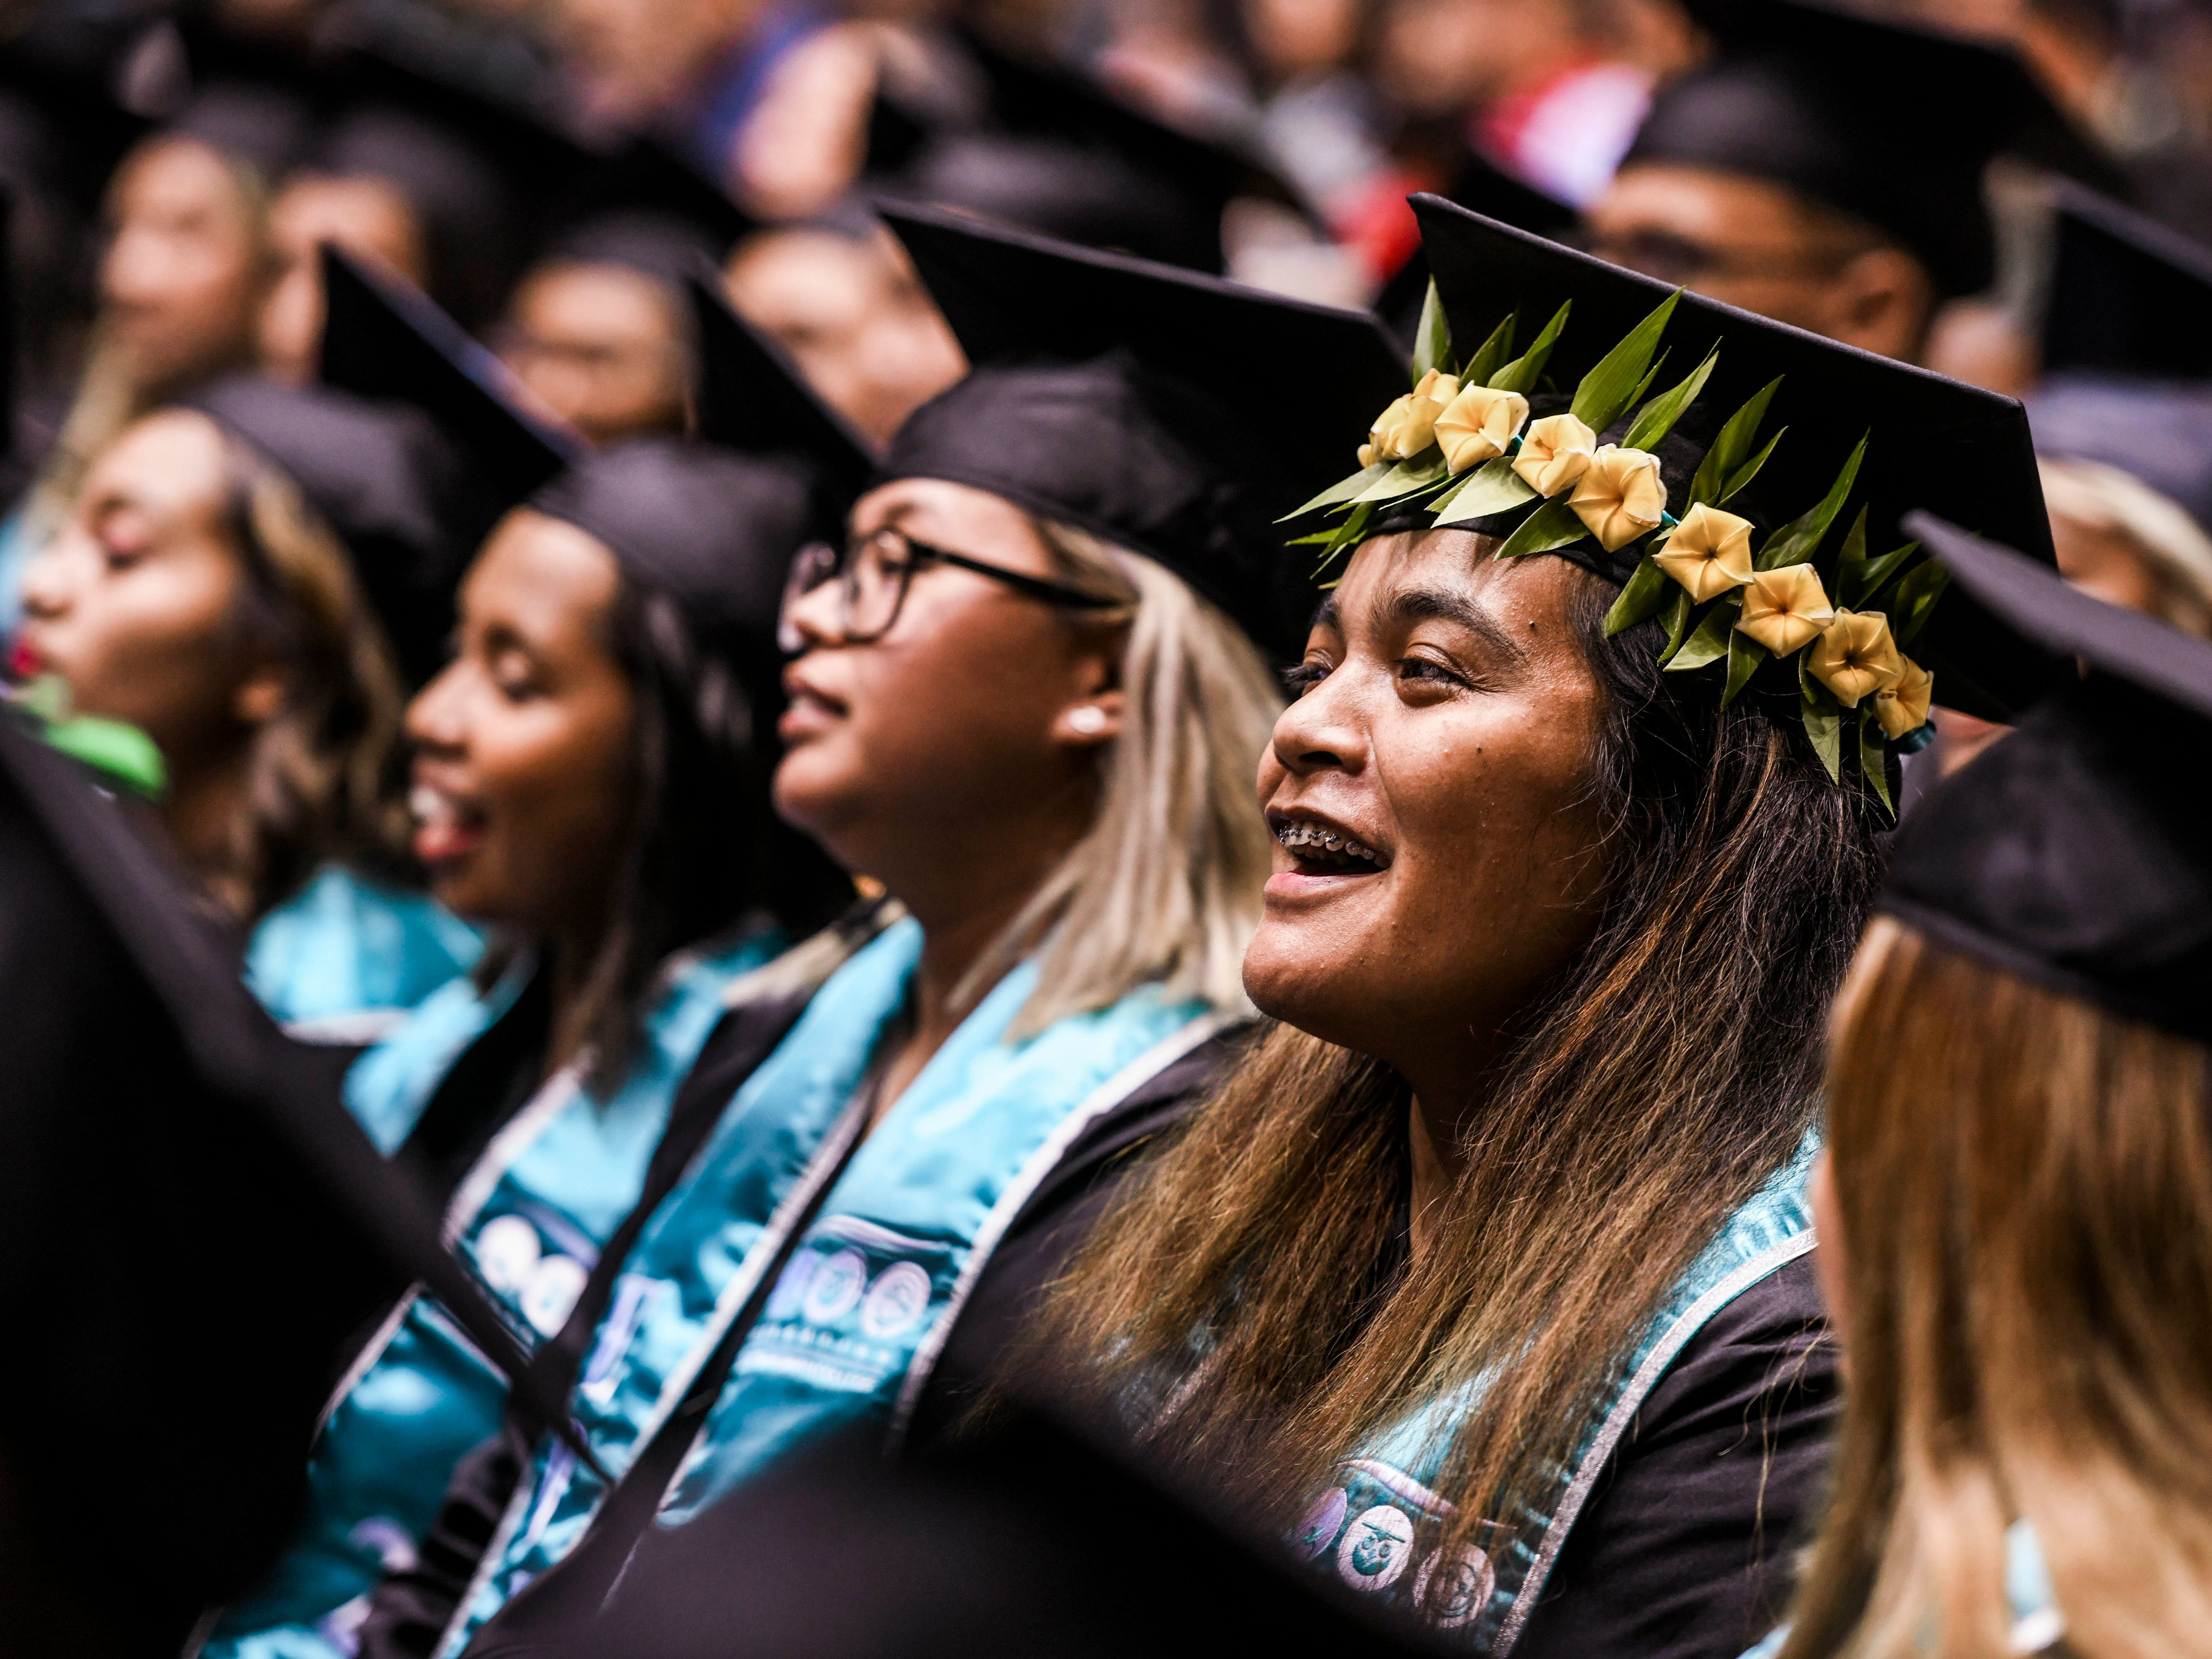 The Guam Community College celebrated the achievements of 357 graduates during the school's commencement exercise at the University of Guam in Mangilao on Friday, May 10, 2019. The college conferred a total of 435 degrees, certificates, and/or diplomas at the ceremony attended by hundreds of family members, friends and other well wishers.